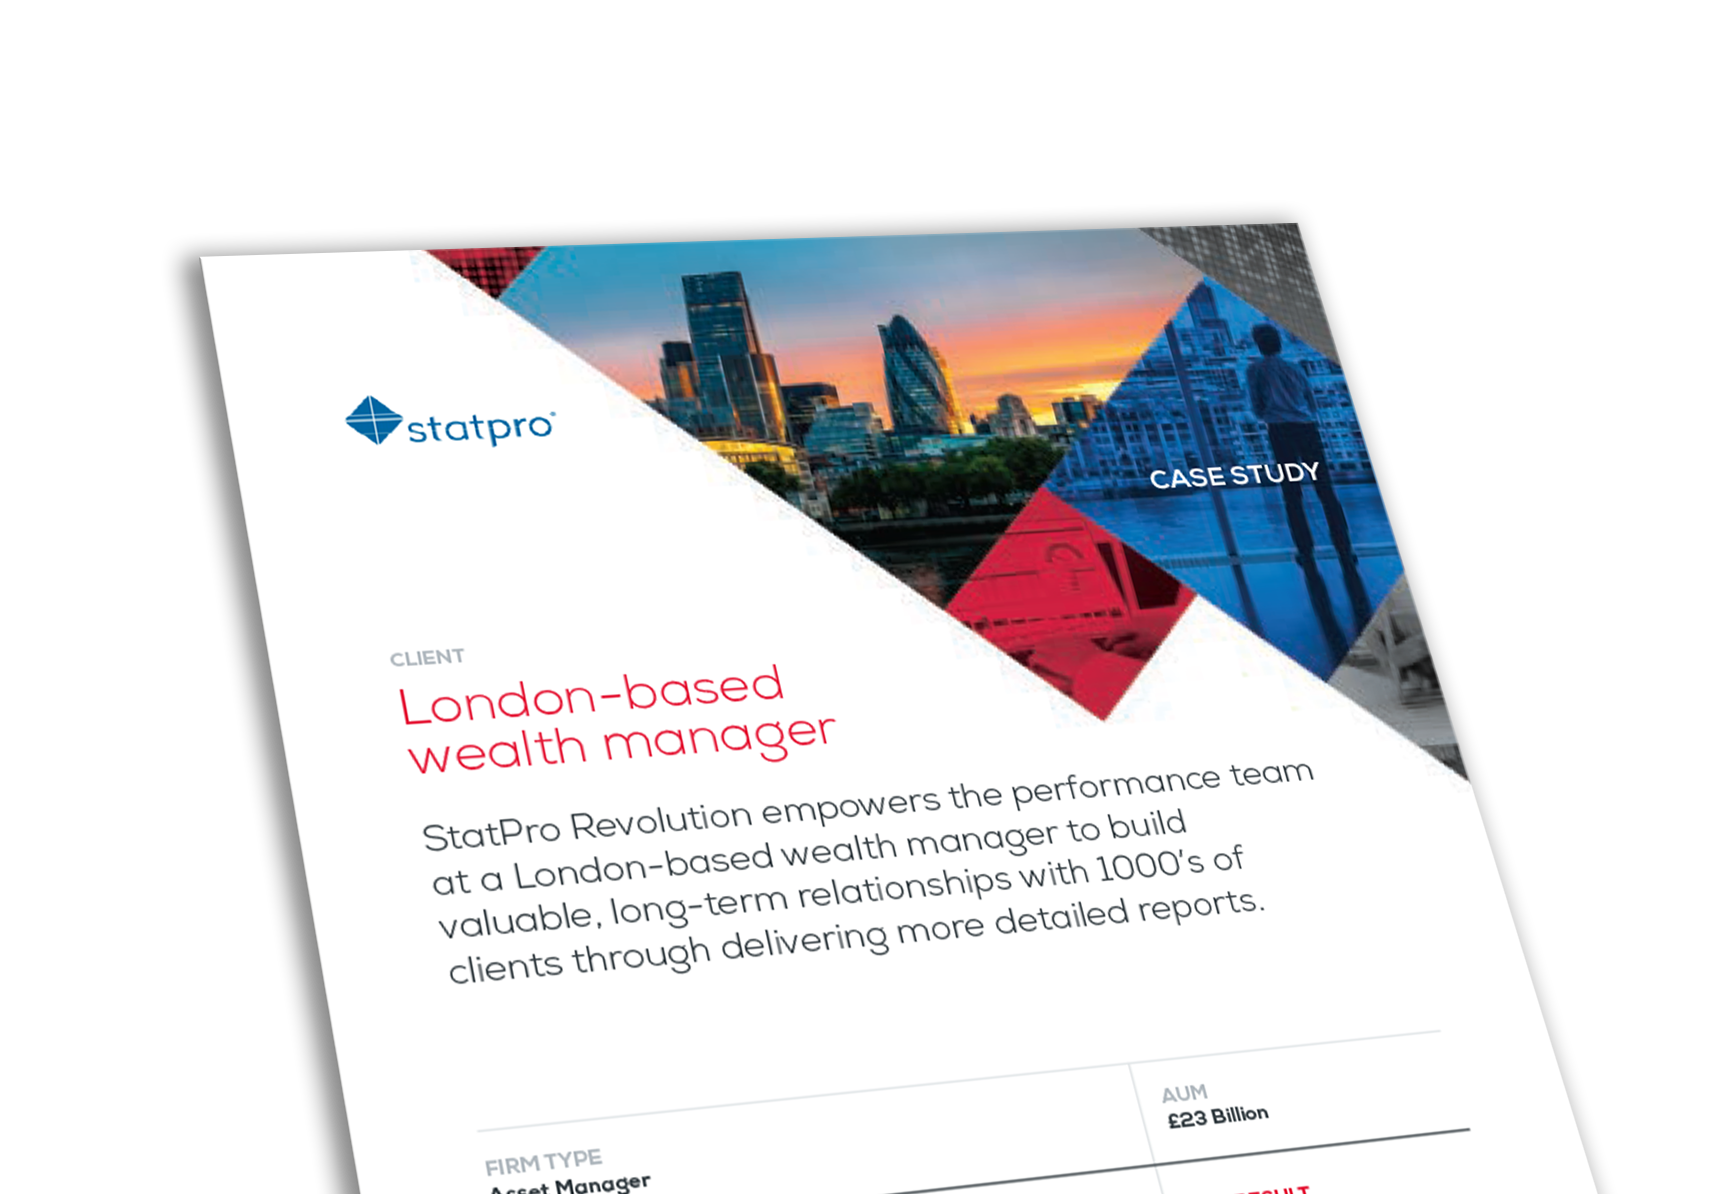 London based wealth manager CS - thumbnail.png